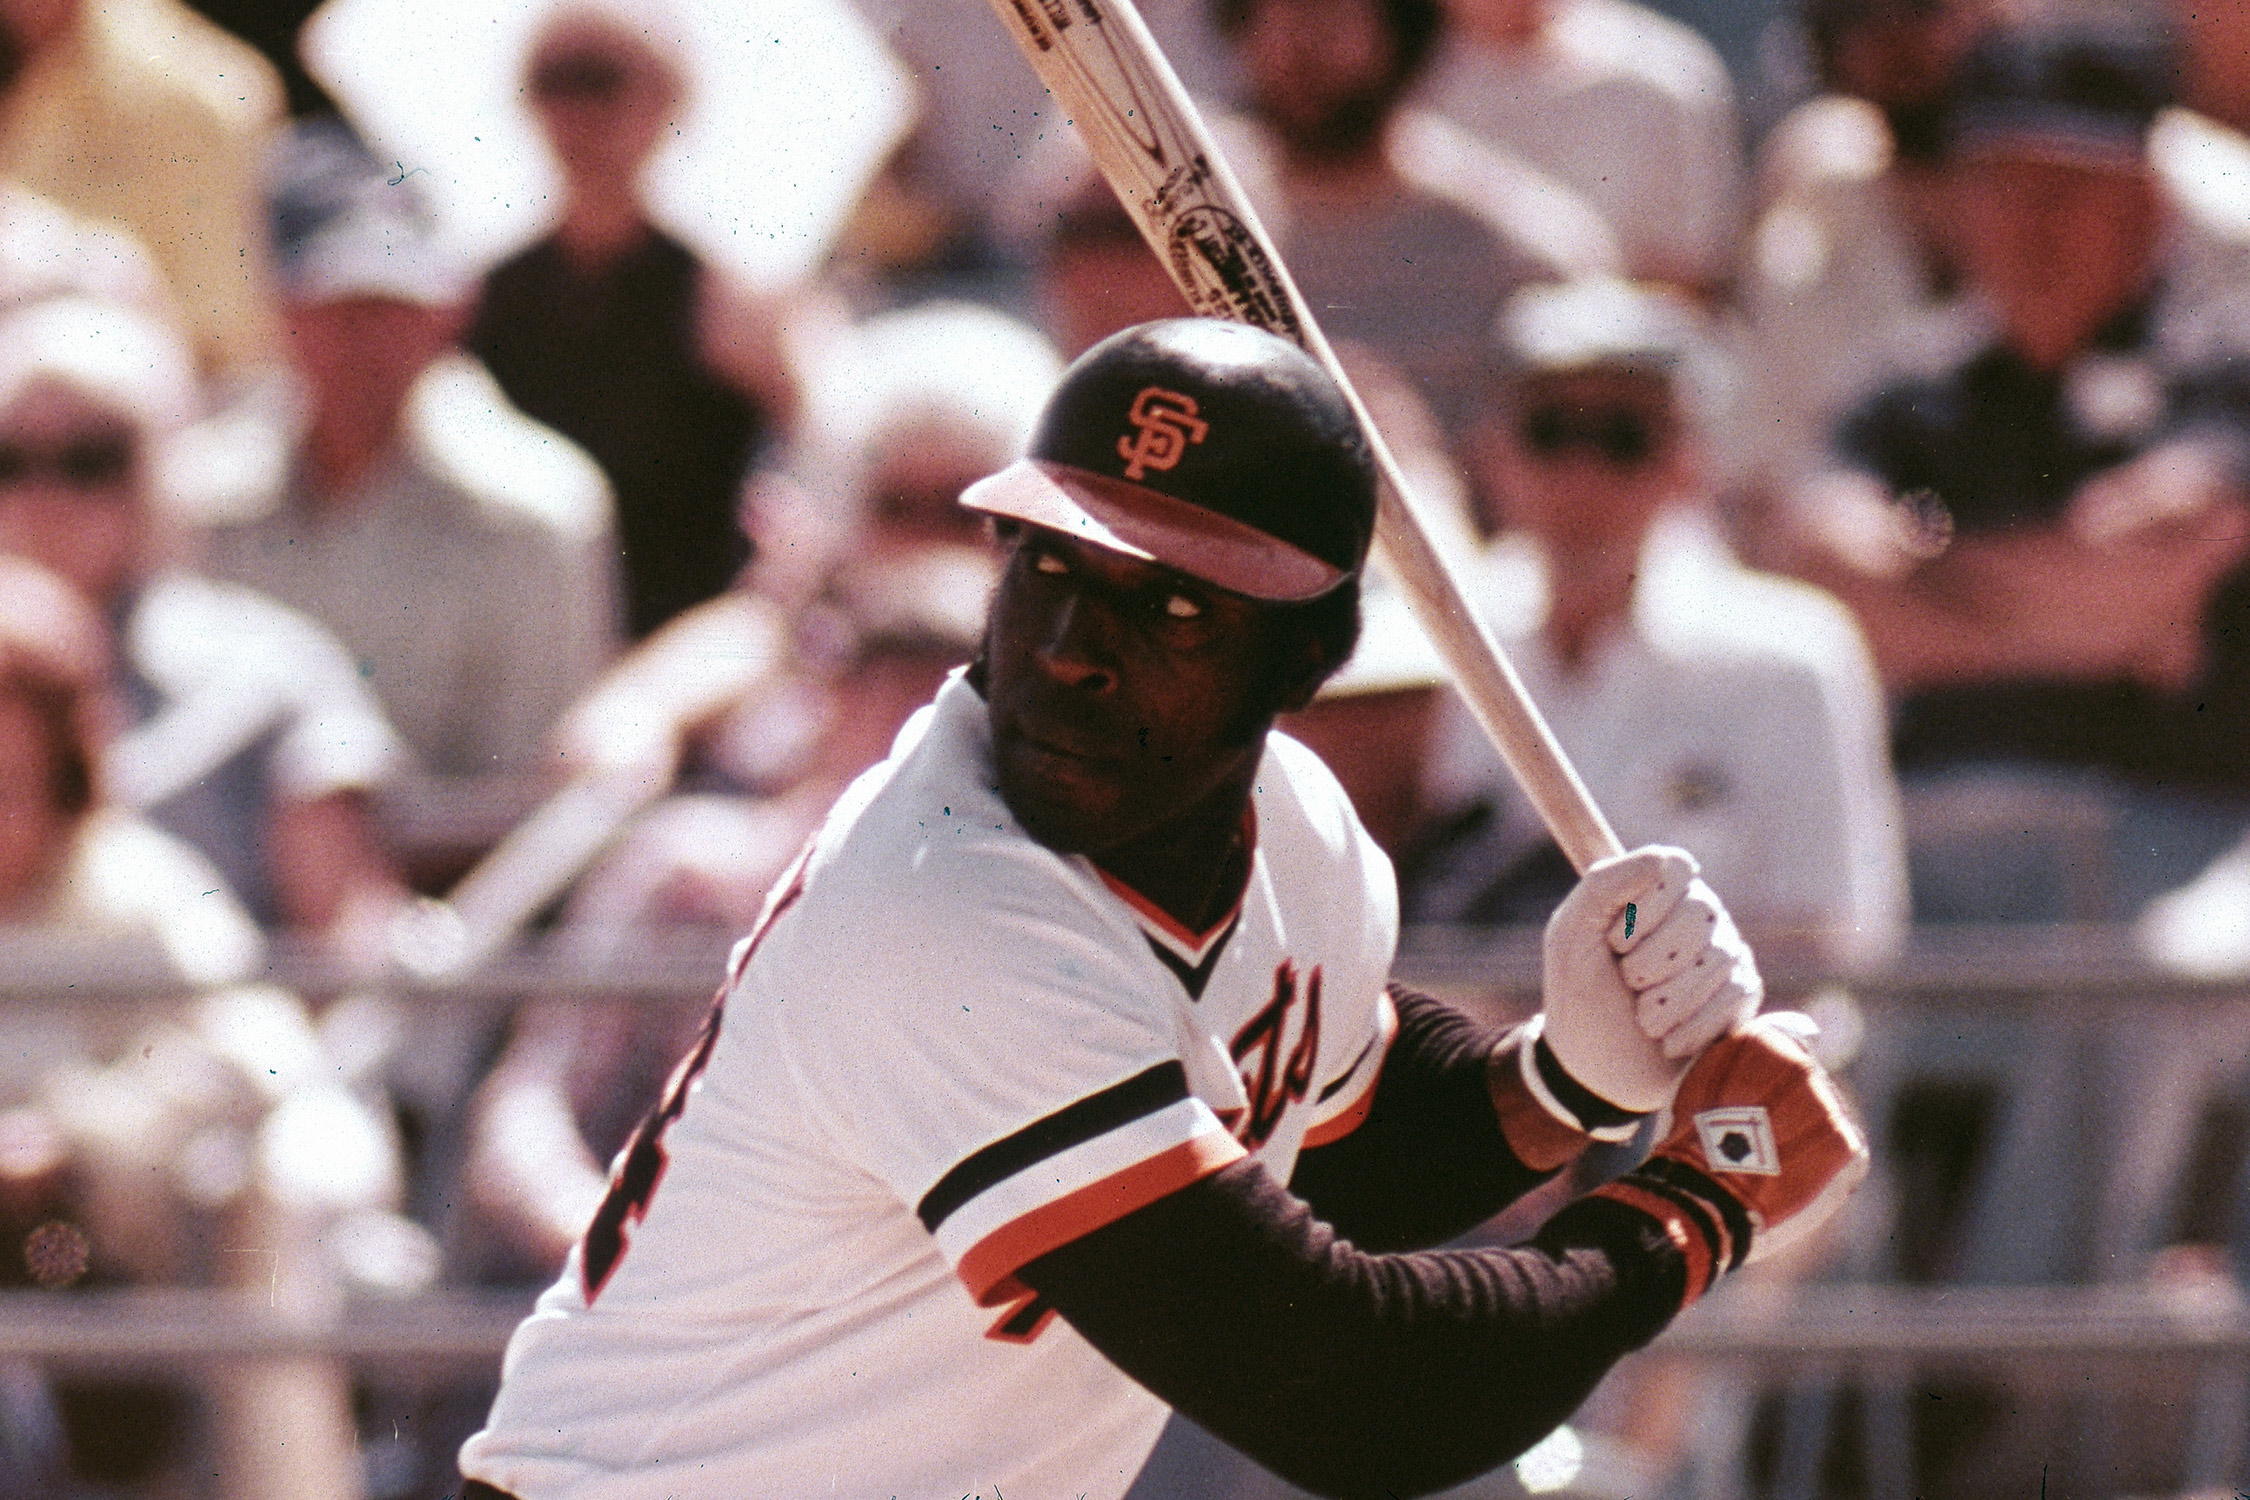 McCovey started his career with a bang, going 4 for 4 with two triples and 2 RBIs against future Hall-of-Famer Robin Roberts.